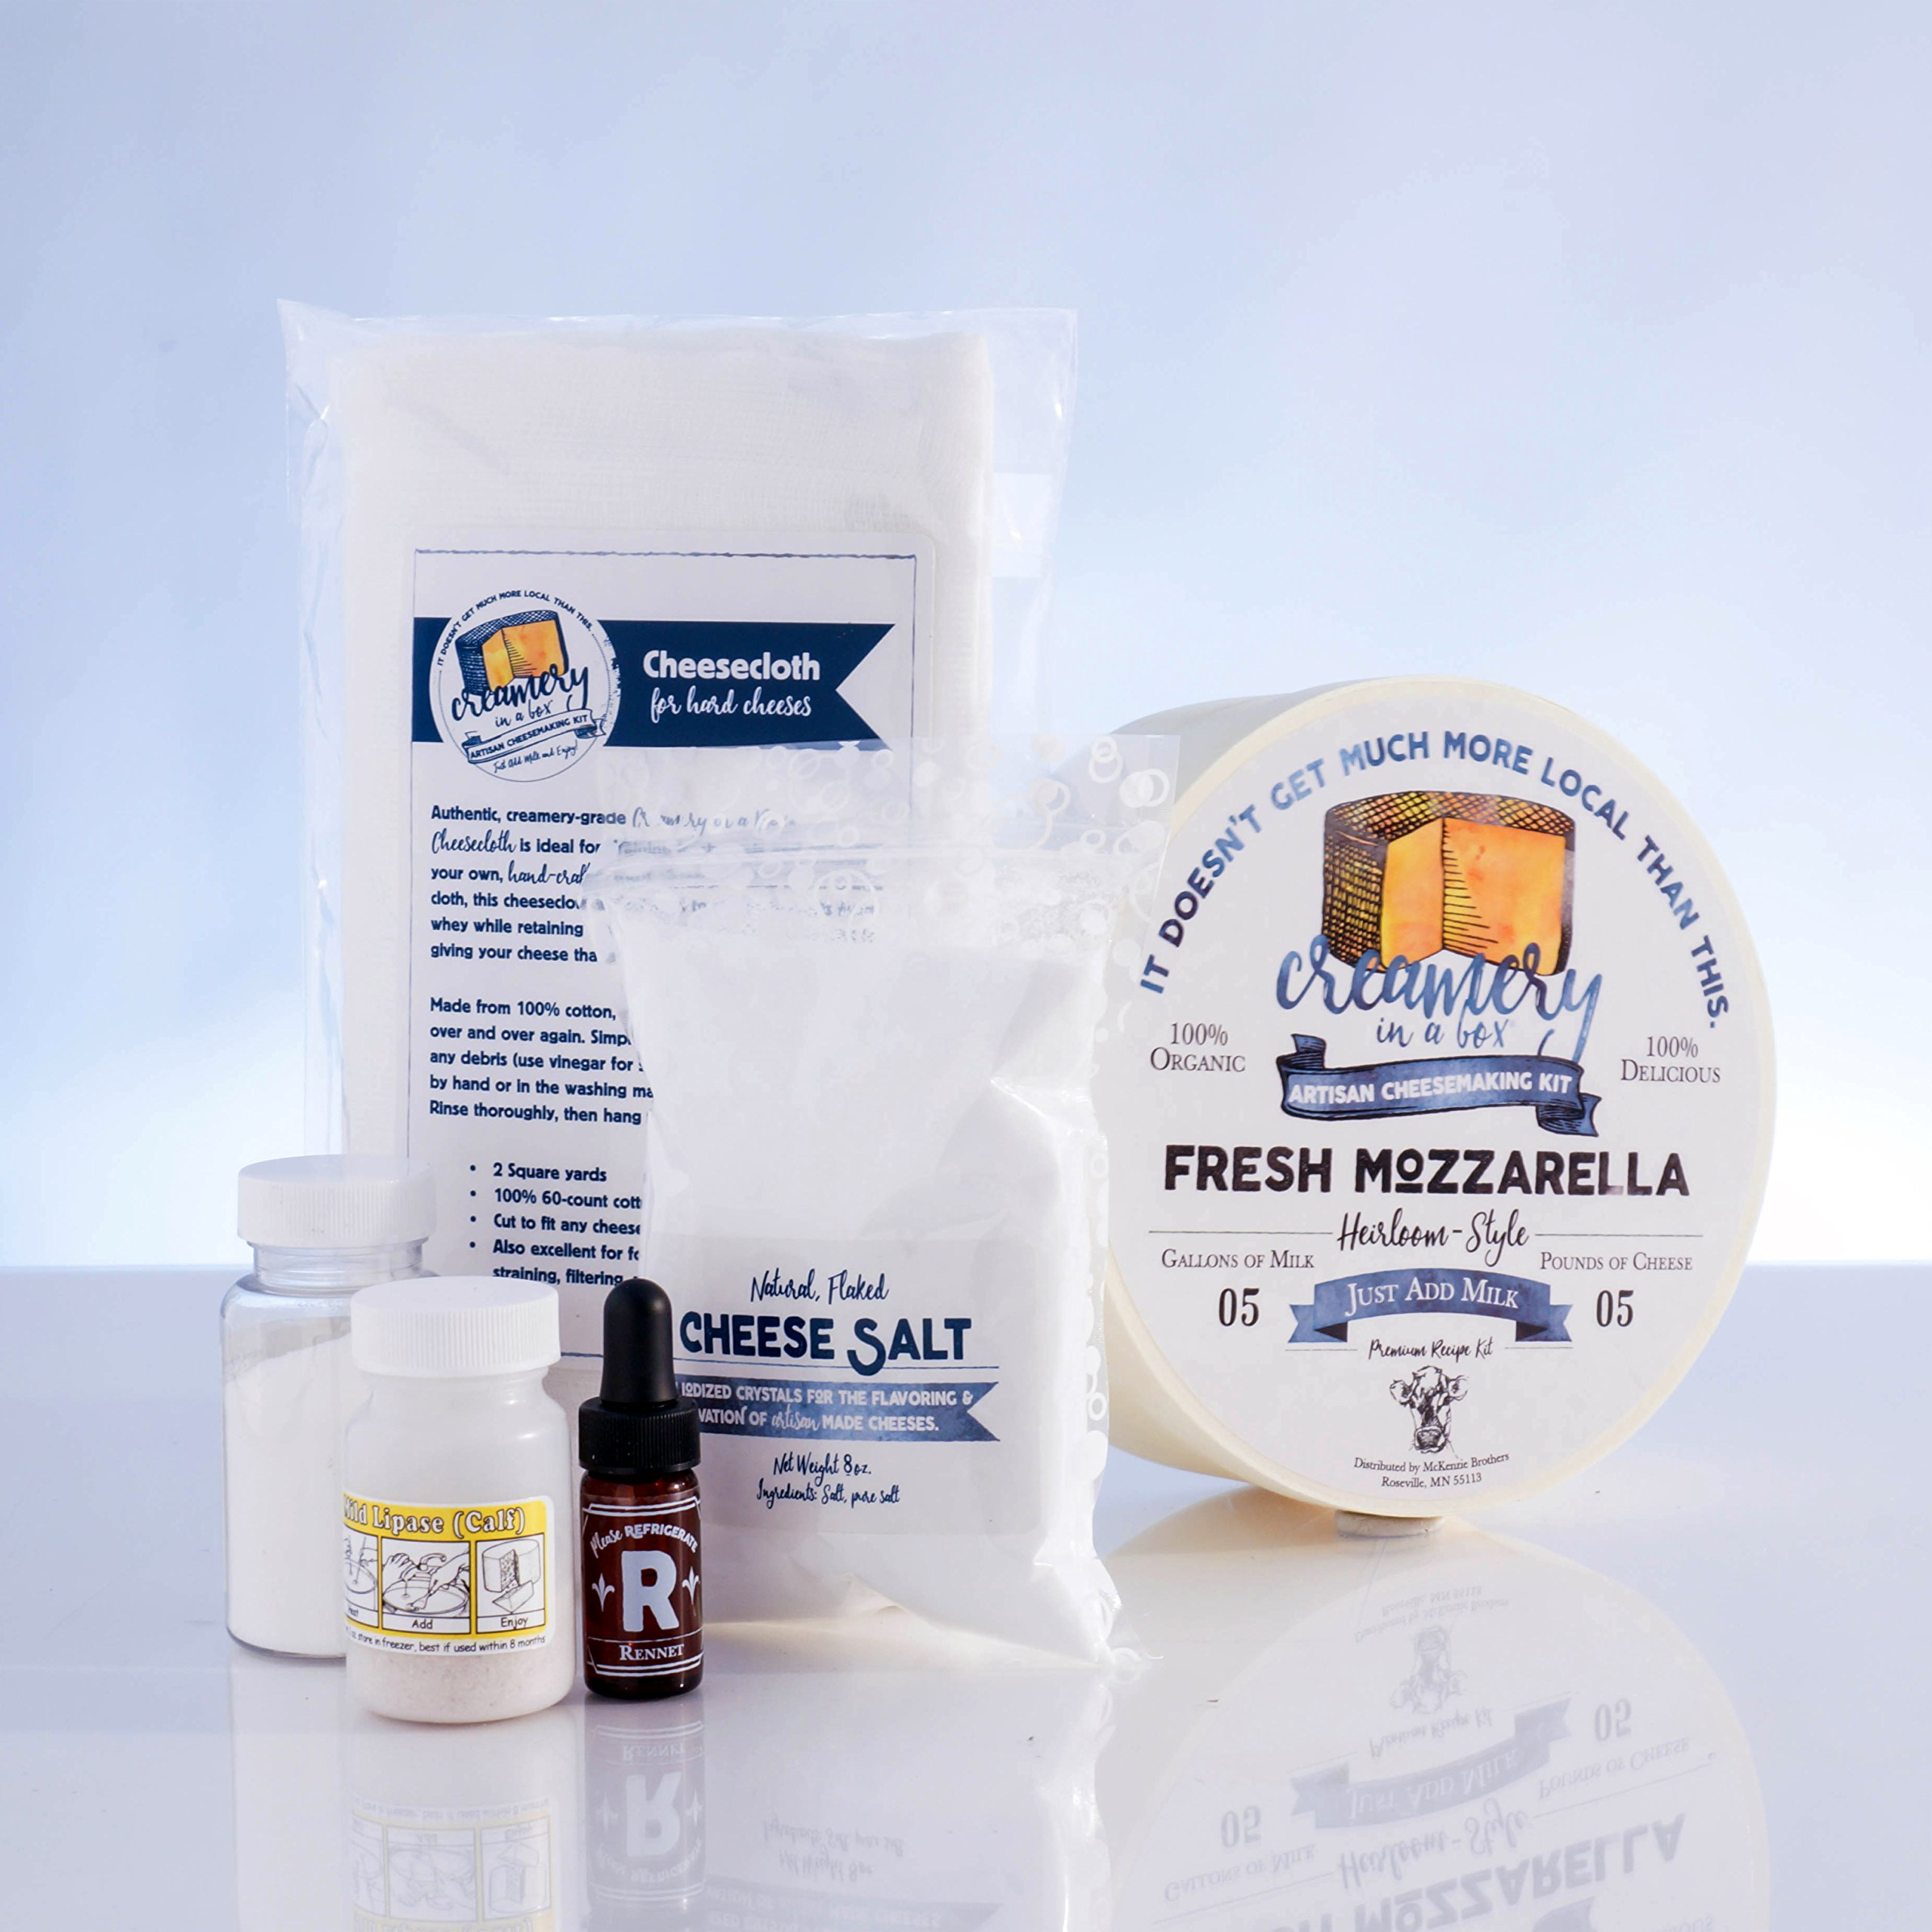 Creamery In A Box Fresh Mozzarella Cheesemaking Recipe Kit - Ingredients For Making 5 Pounds Of Homemade Cheese